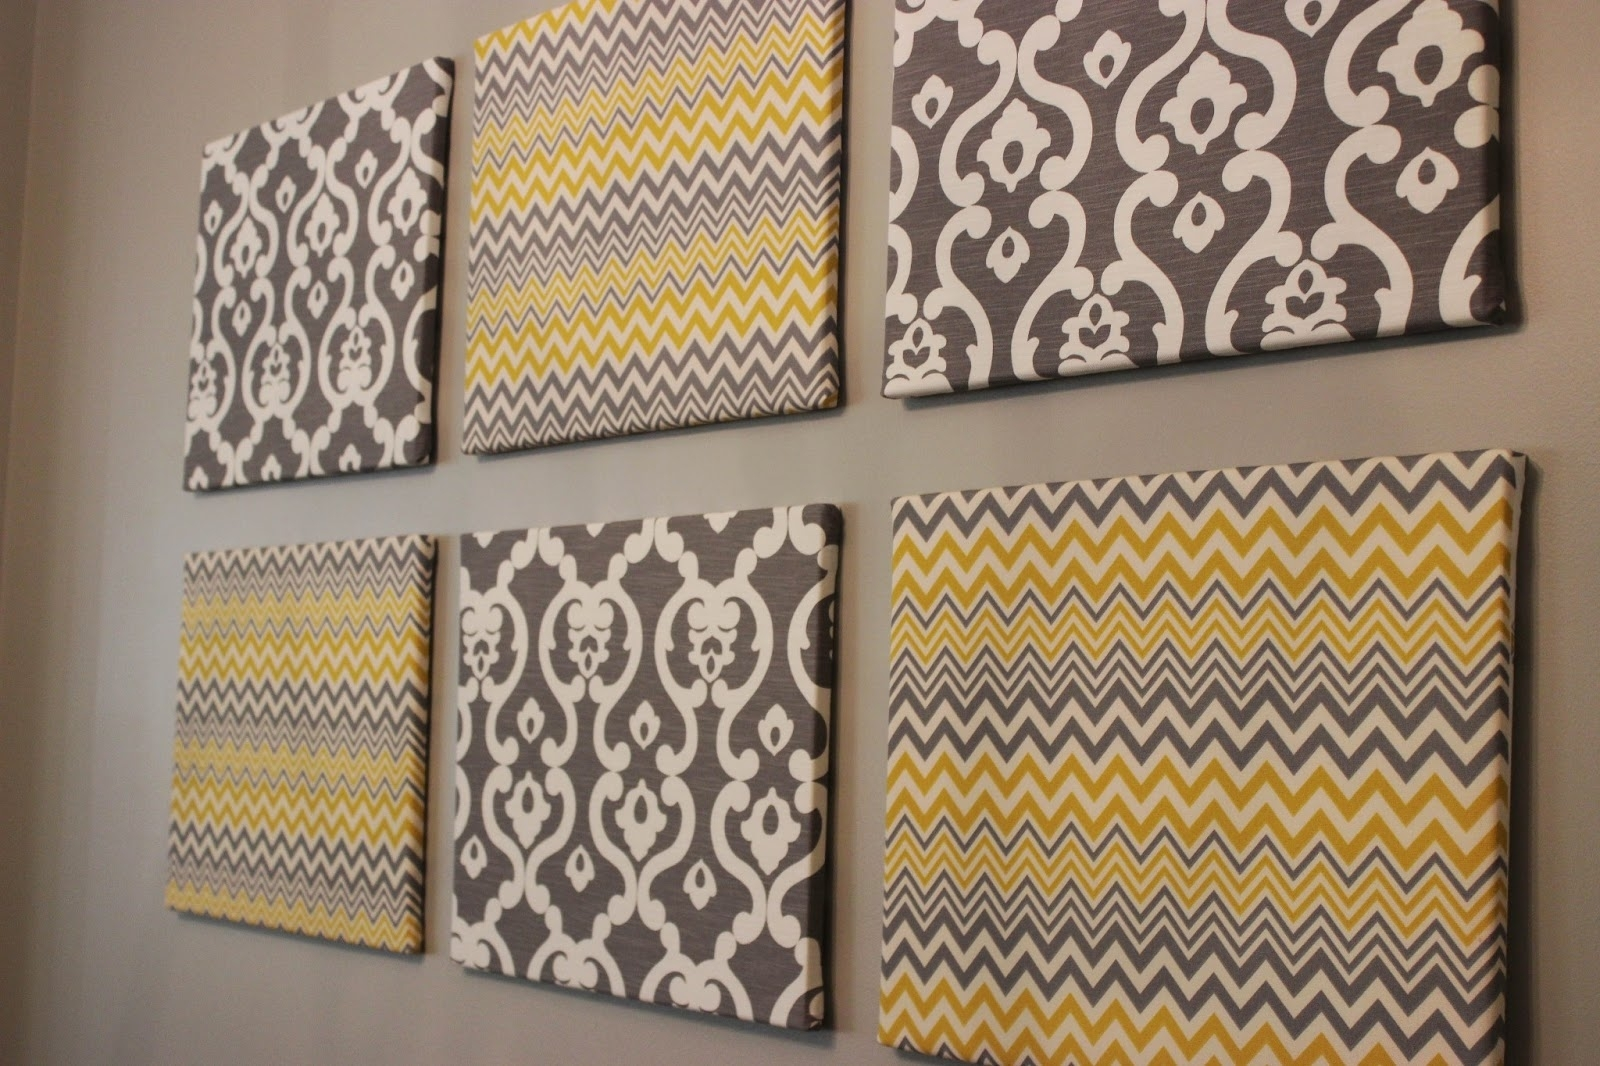 Cheap Price Of Easy Diy Art As Wall Decor Made Of Paper Material For Latest Cheap Fabric Wall Art (View 4 of 15)